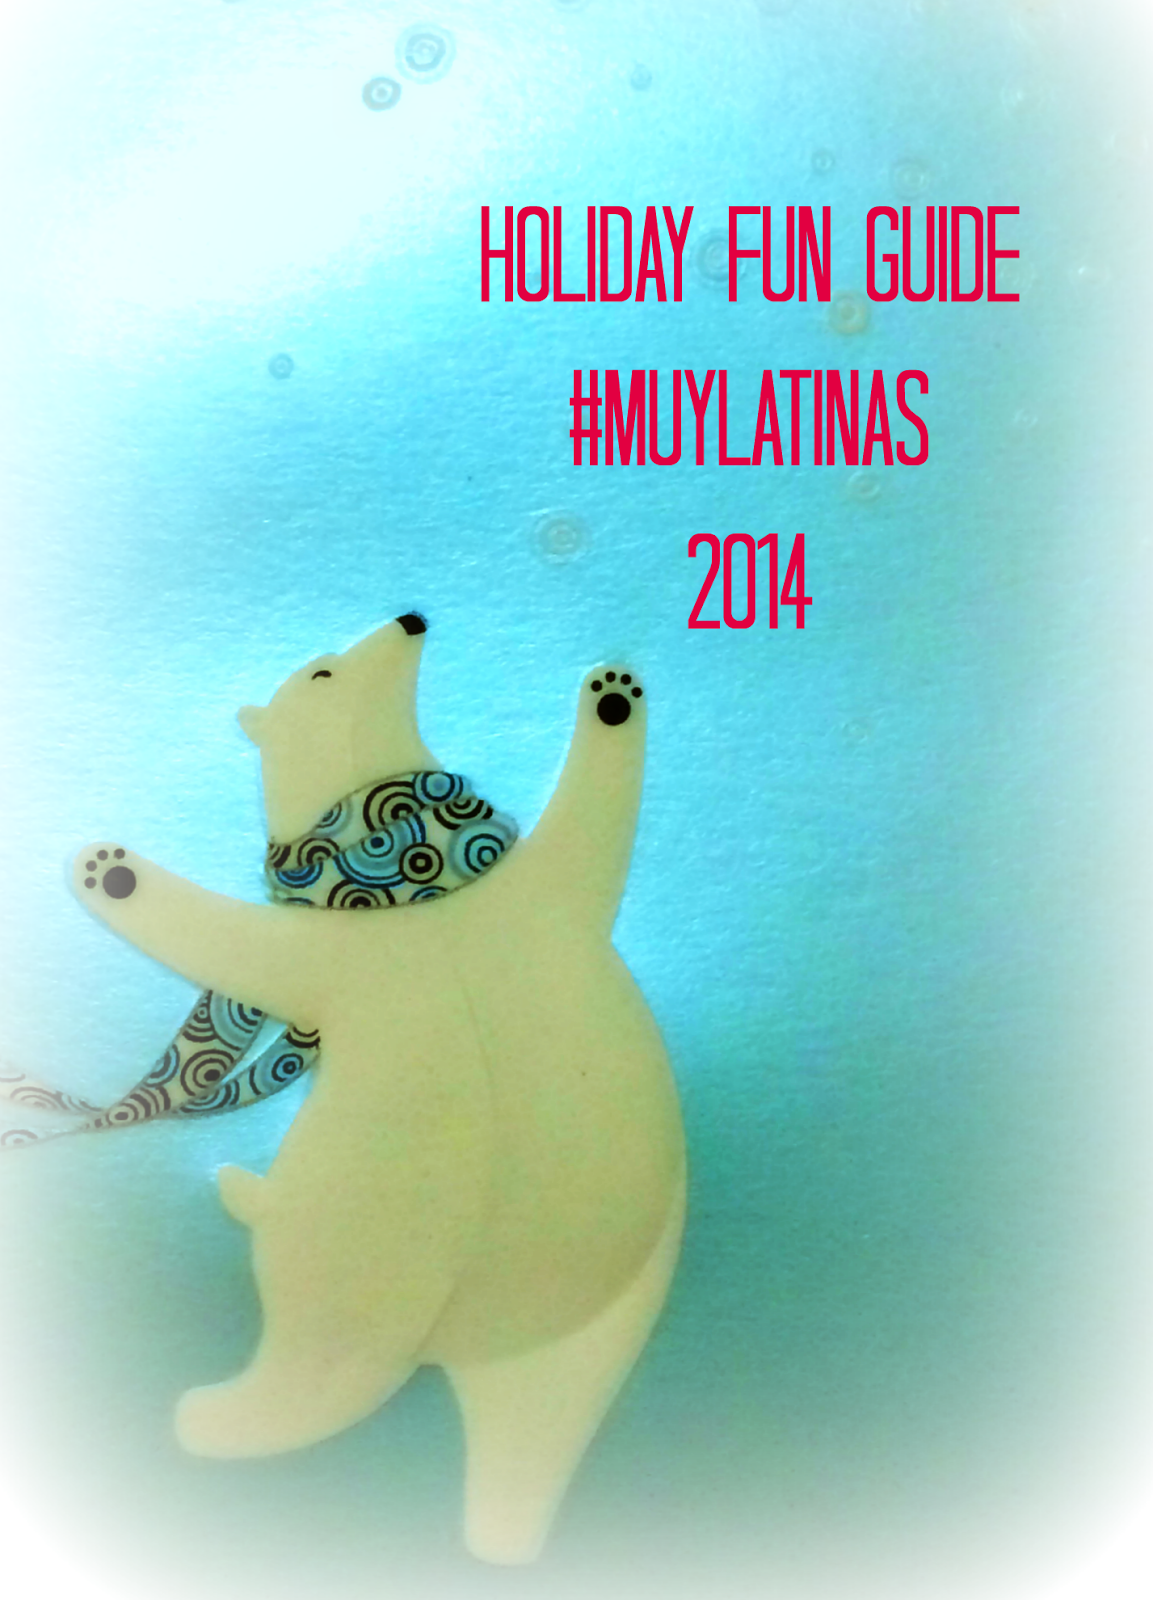 cool moms cool tips and muy latinas holiday fun guide